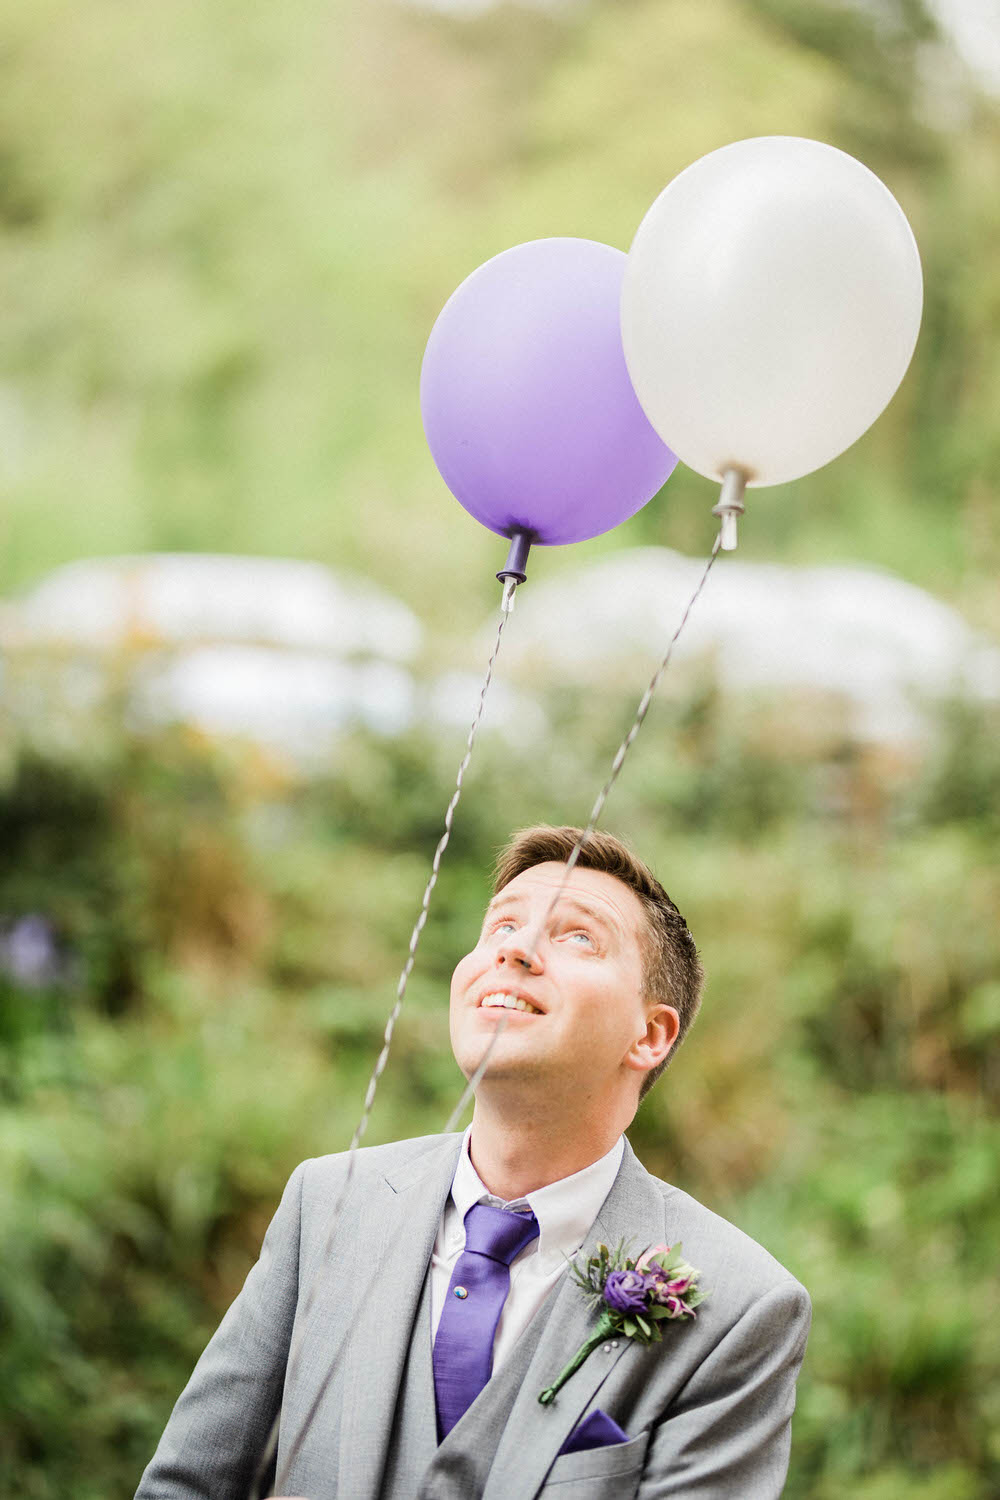 Special-Day-Photography-Egypt-Mills-Hotel-Stroud-Purple-themed-wedding-decor-Purple-and-silver-wedding-balloons.jpg